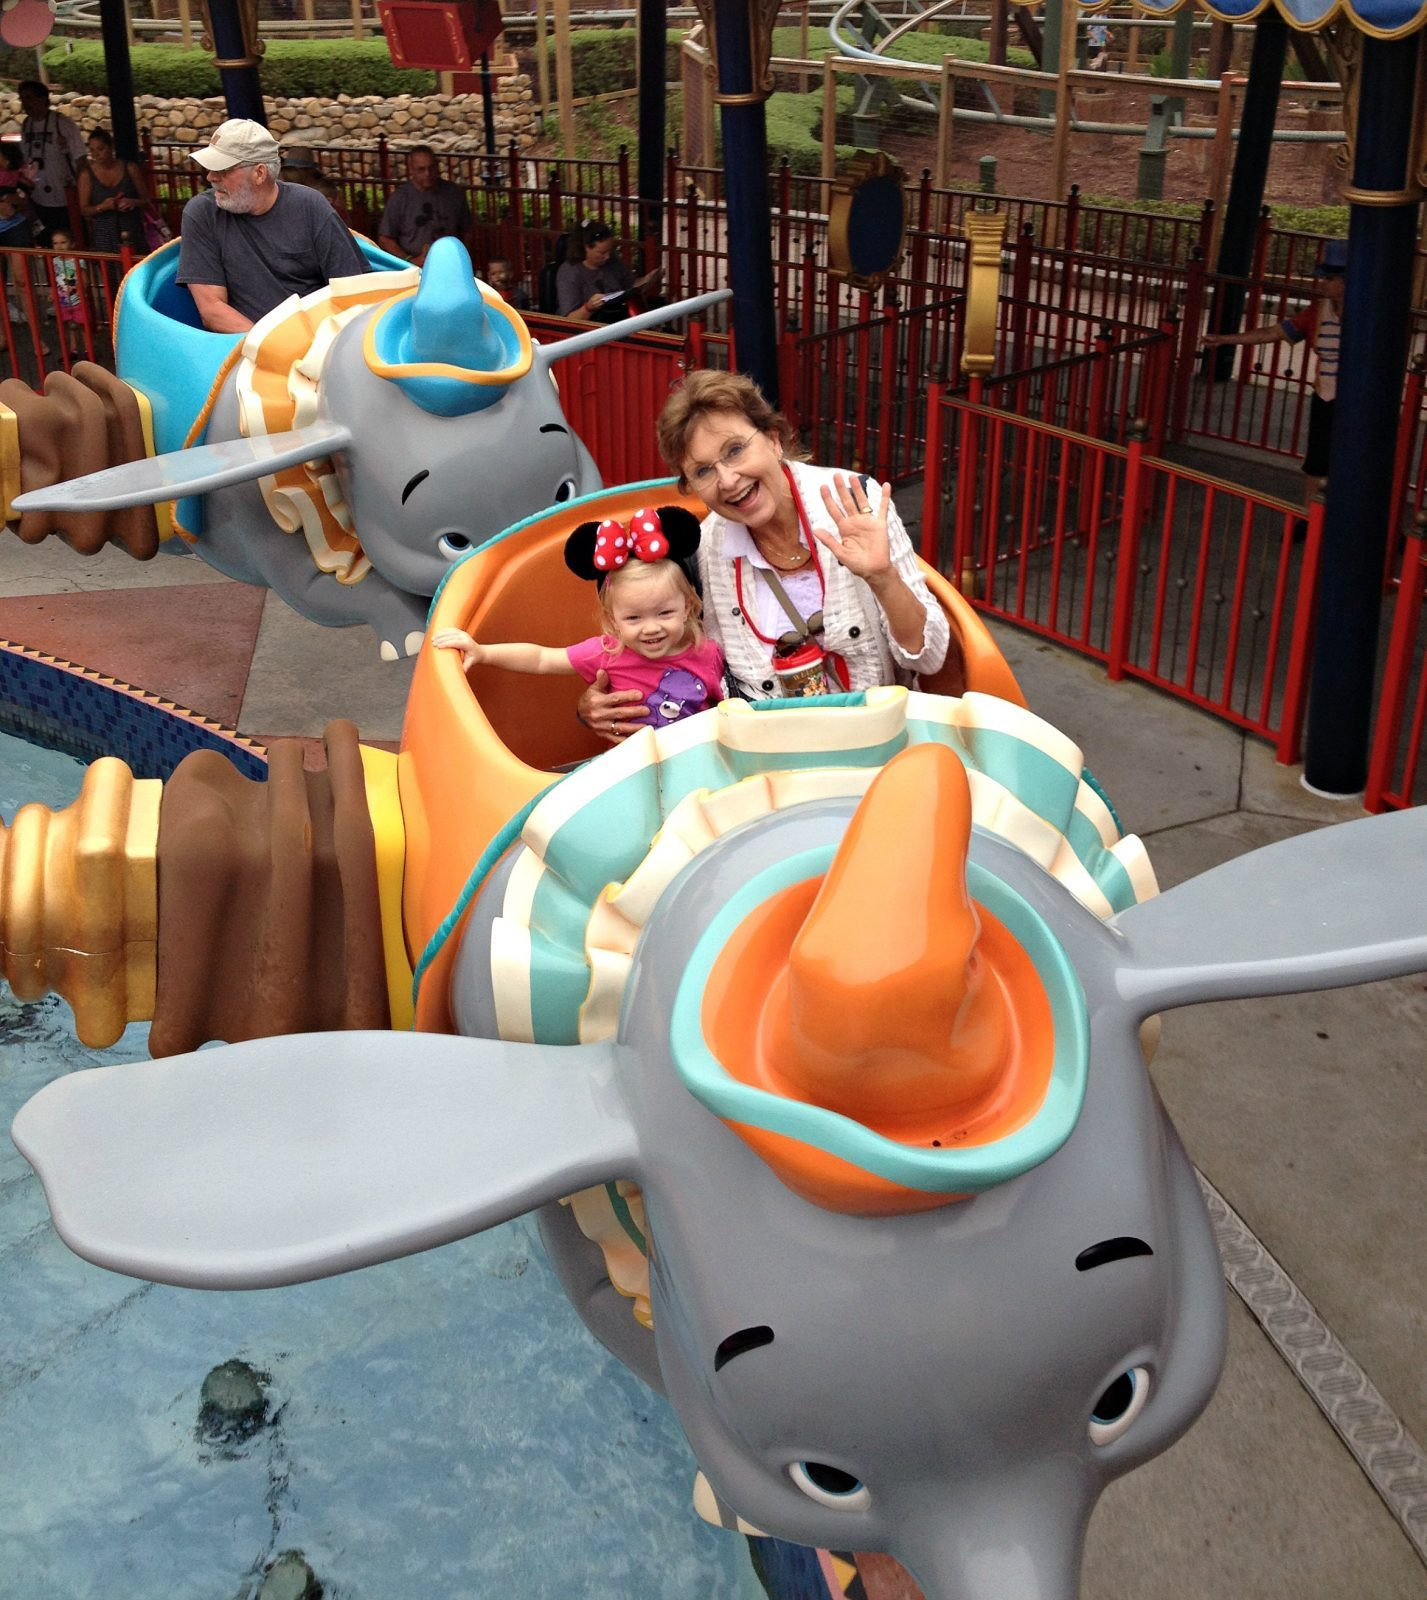 little girl and grandmother riding the disney dumbo ride